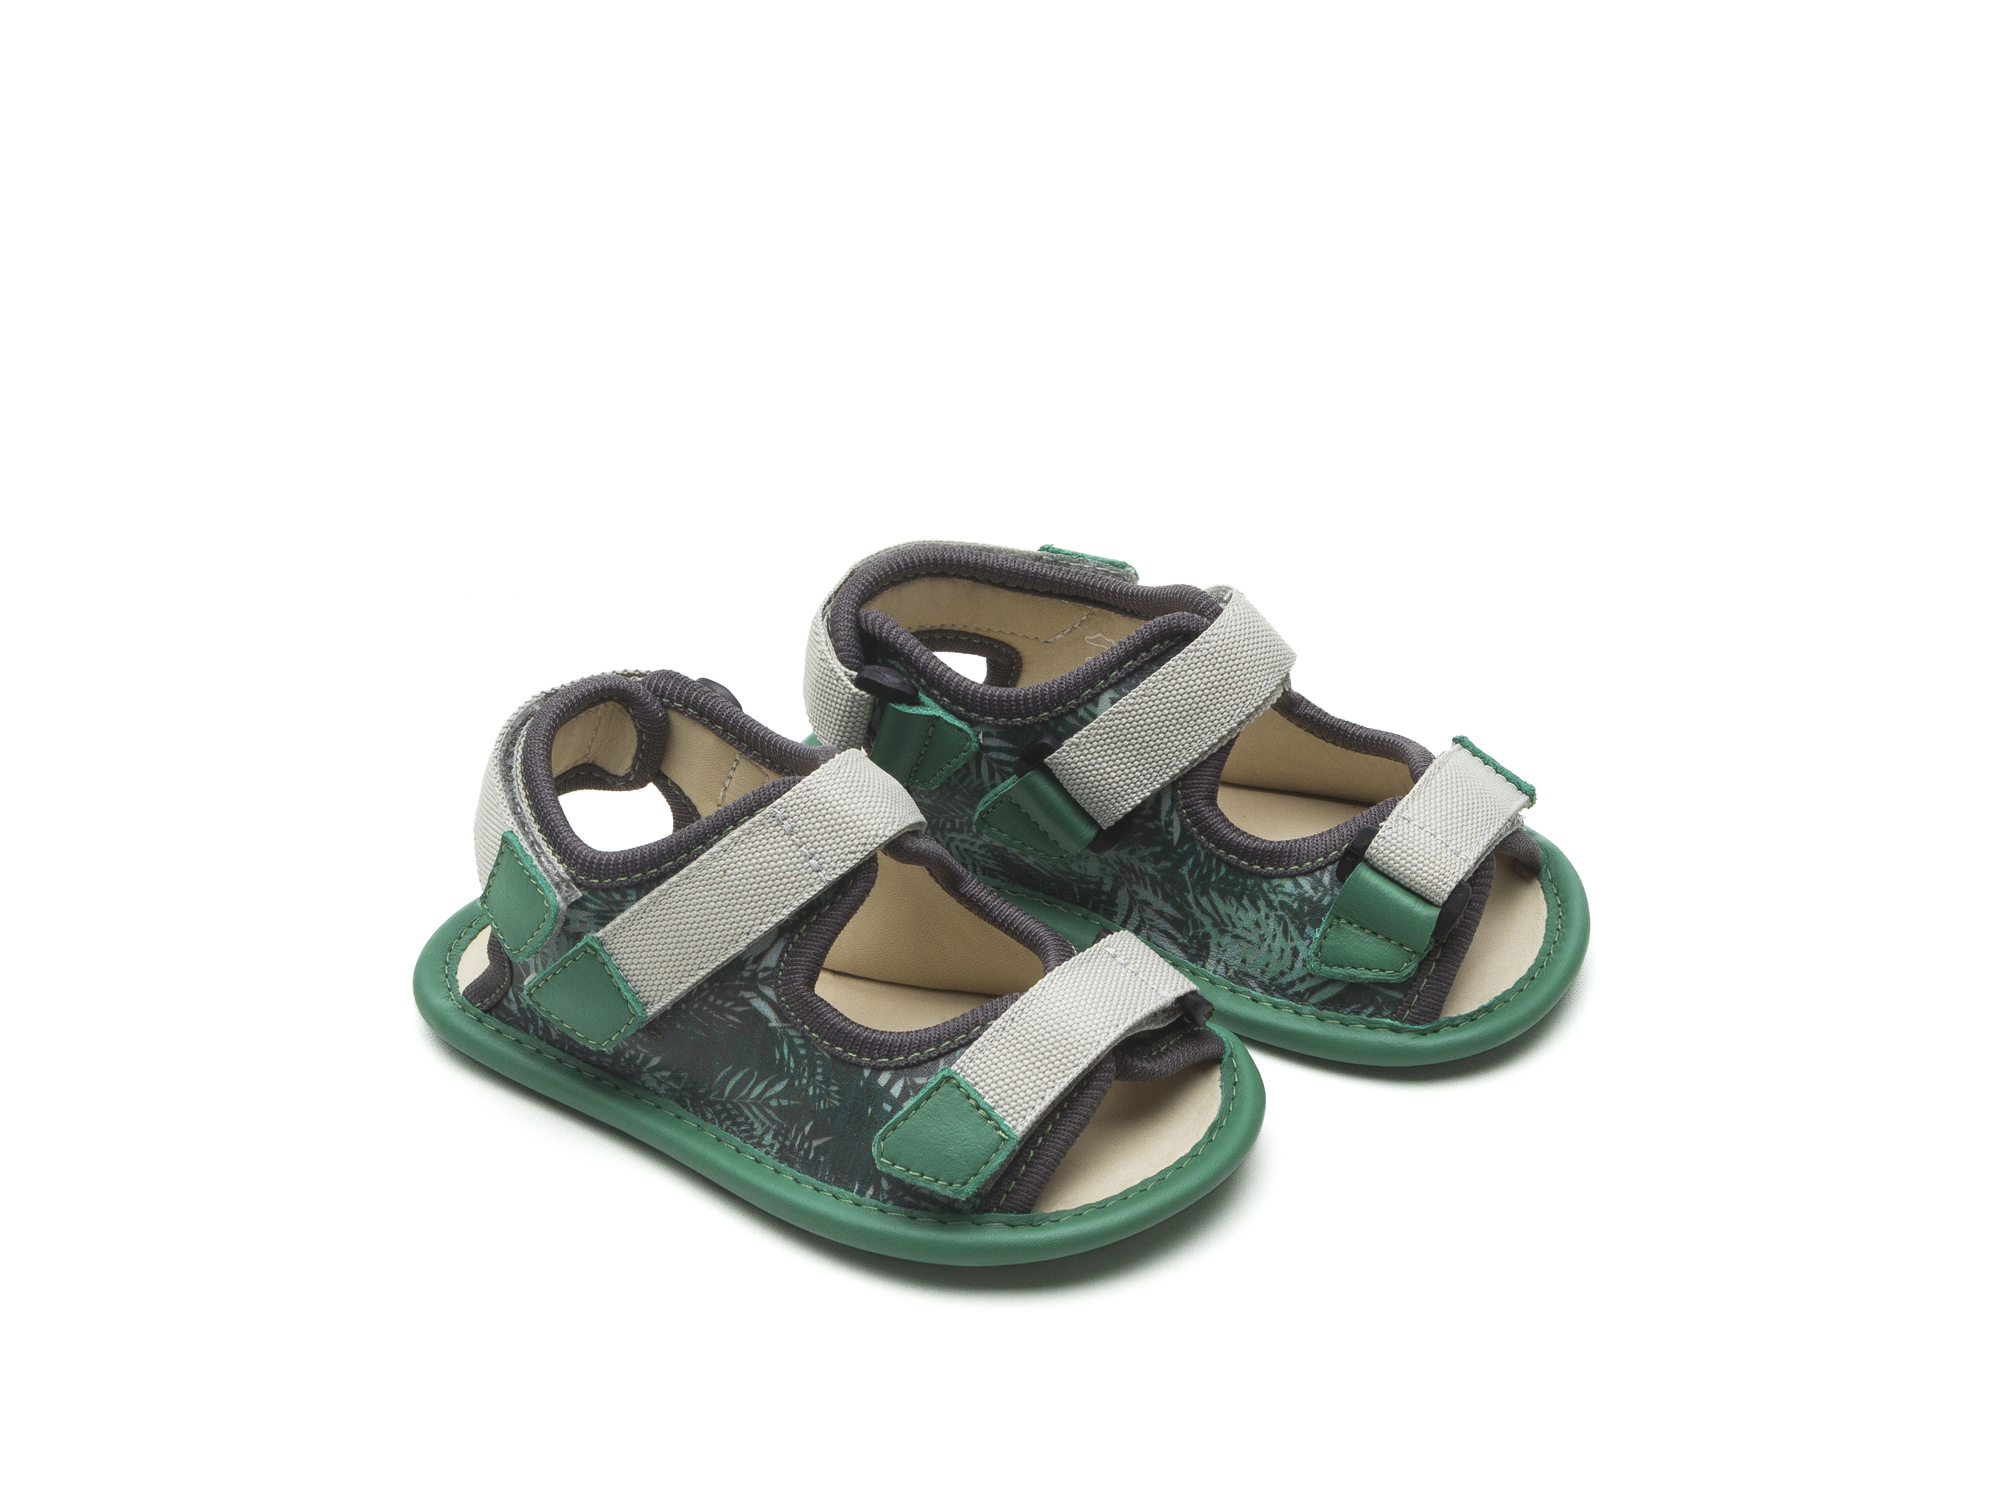 Sandal Boardy Green Palm/ Green Leaf Baby for ages 0 to 2 years - 0